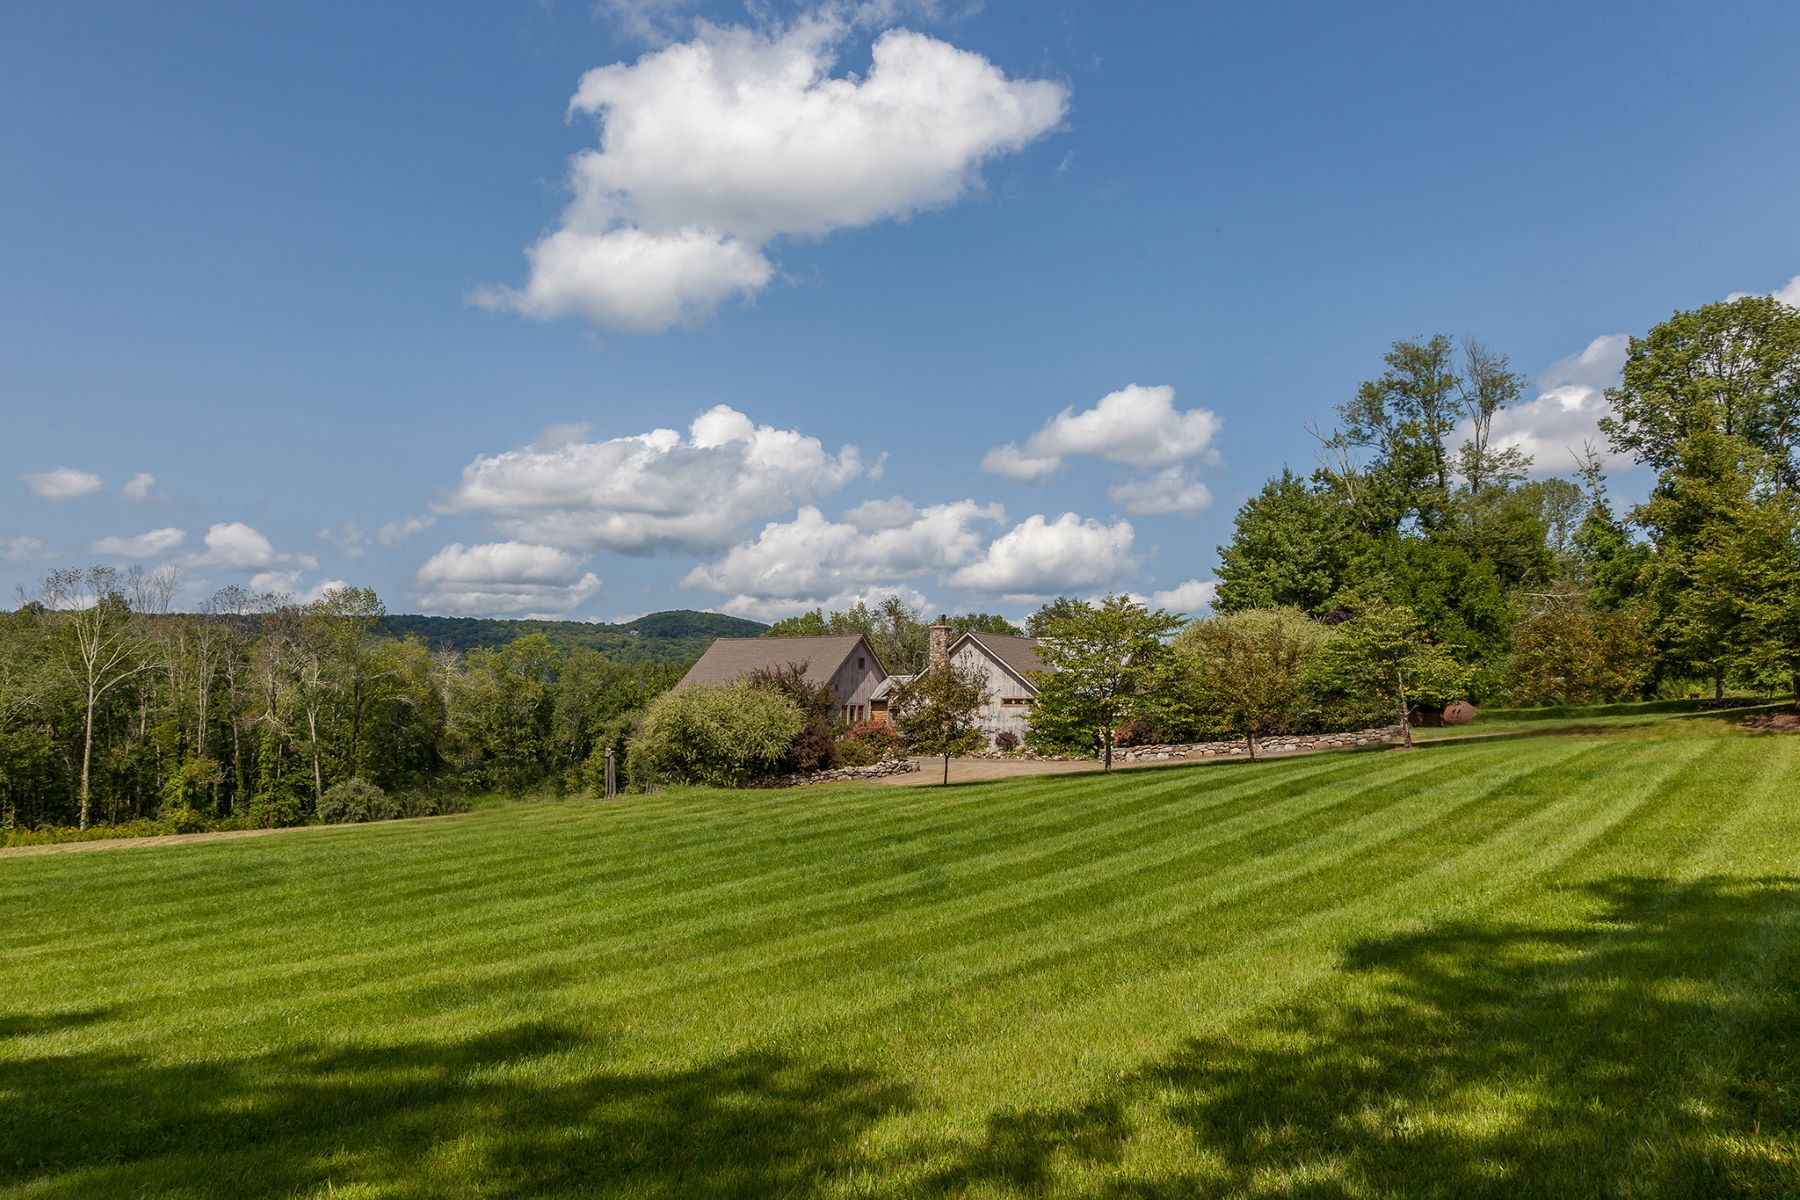 Single Family Home for Sale at Designed by Noted Artist & Studio Furniture Maker 205 Sawyer Hill Road, New Milford, Connecticut, 06776 United States